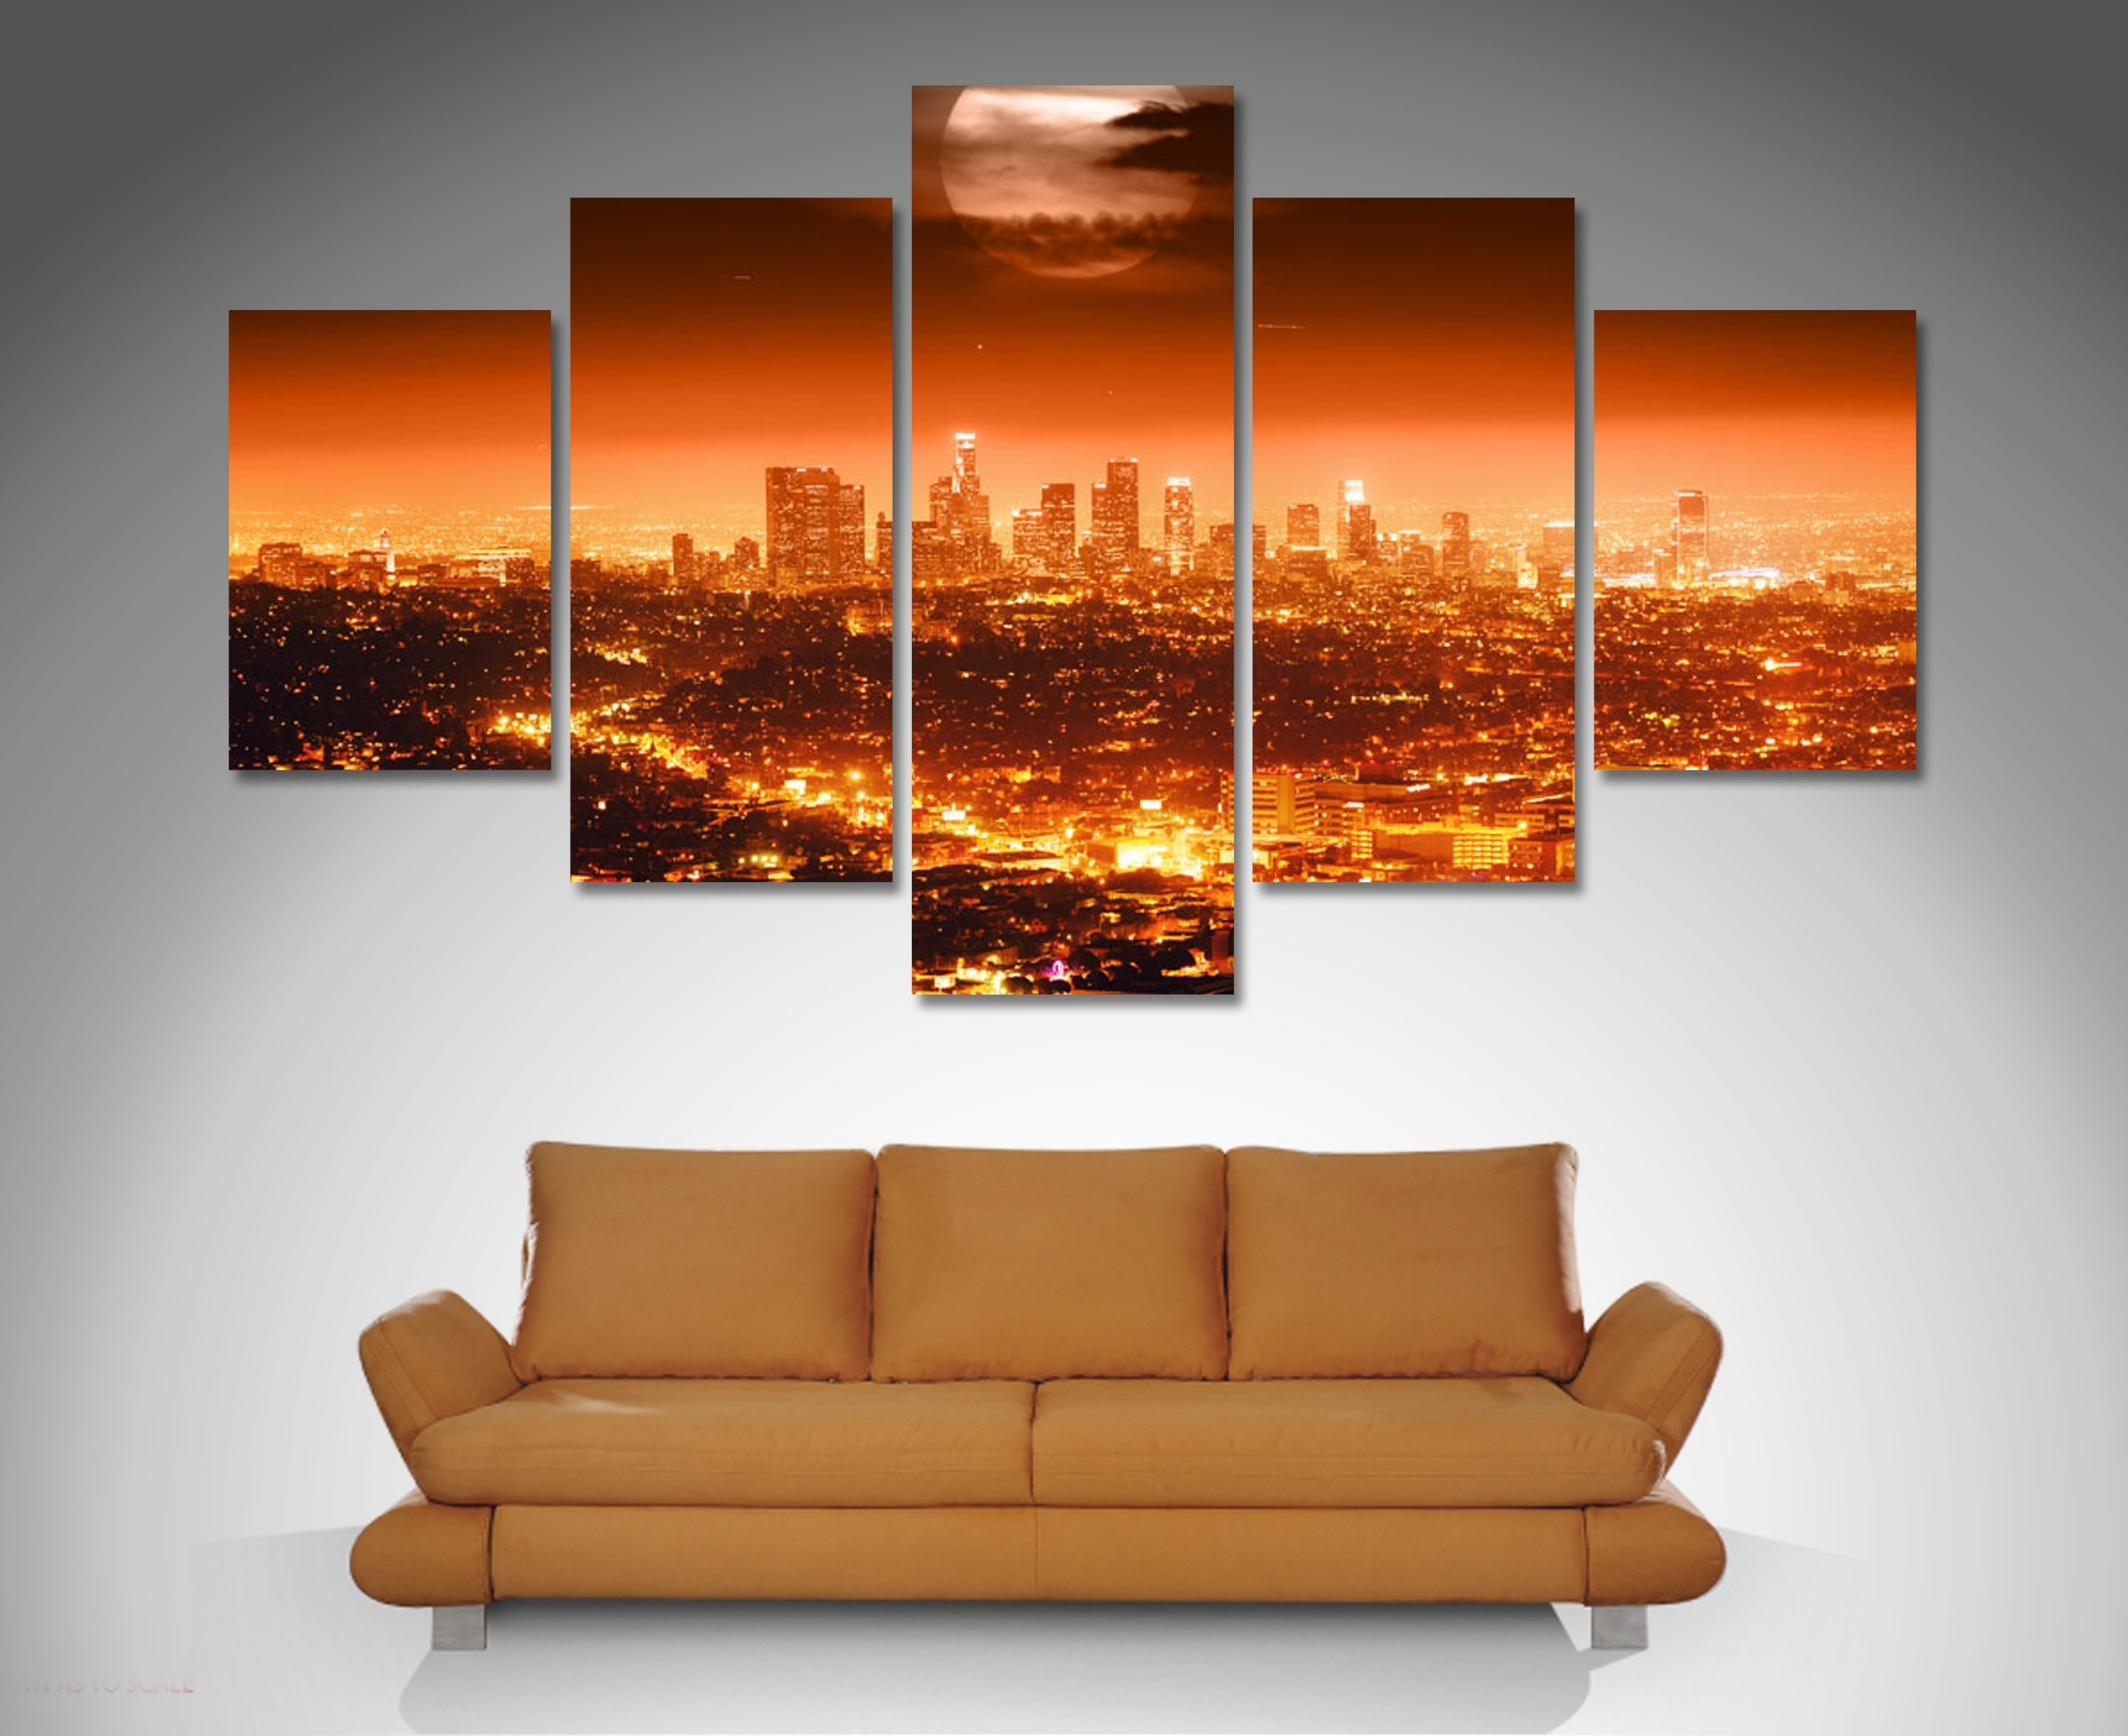 Los Angeles 5 Panel Wall Art Canvas Print intended for 2018 5 Panel Wall Art